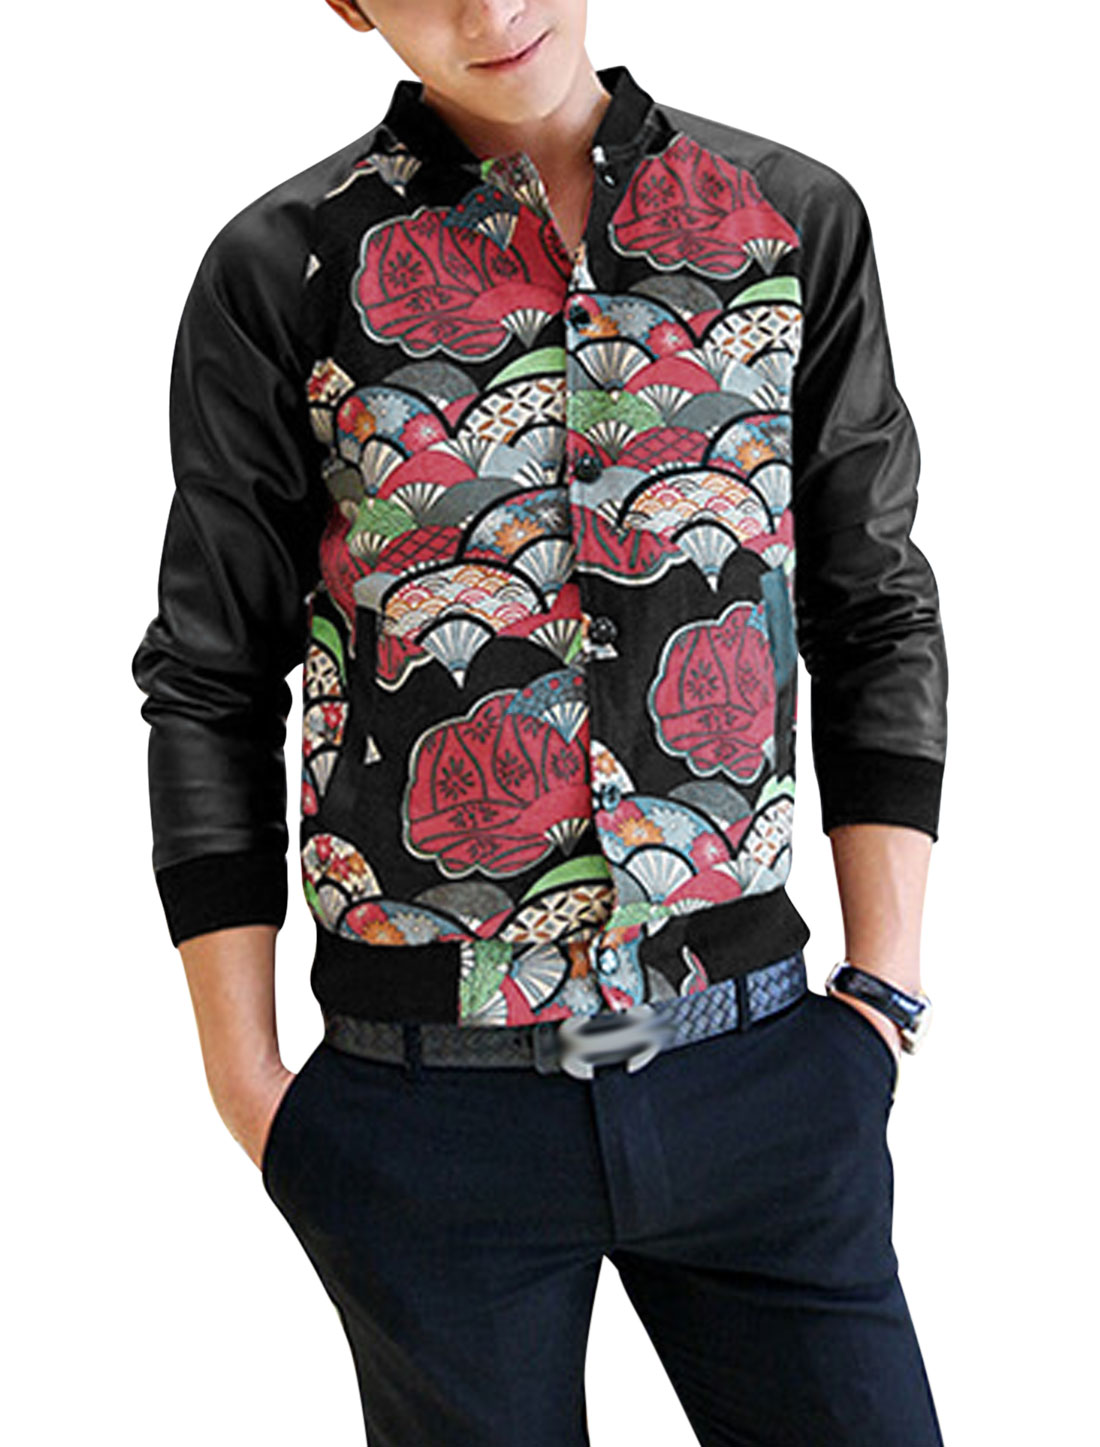 Men Fan Pattern Imitation Leather Sleeve Casual Varsity Jacket Black Multicolor S